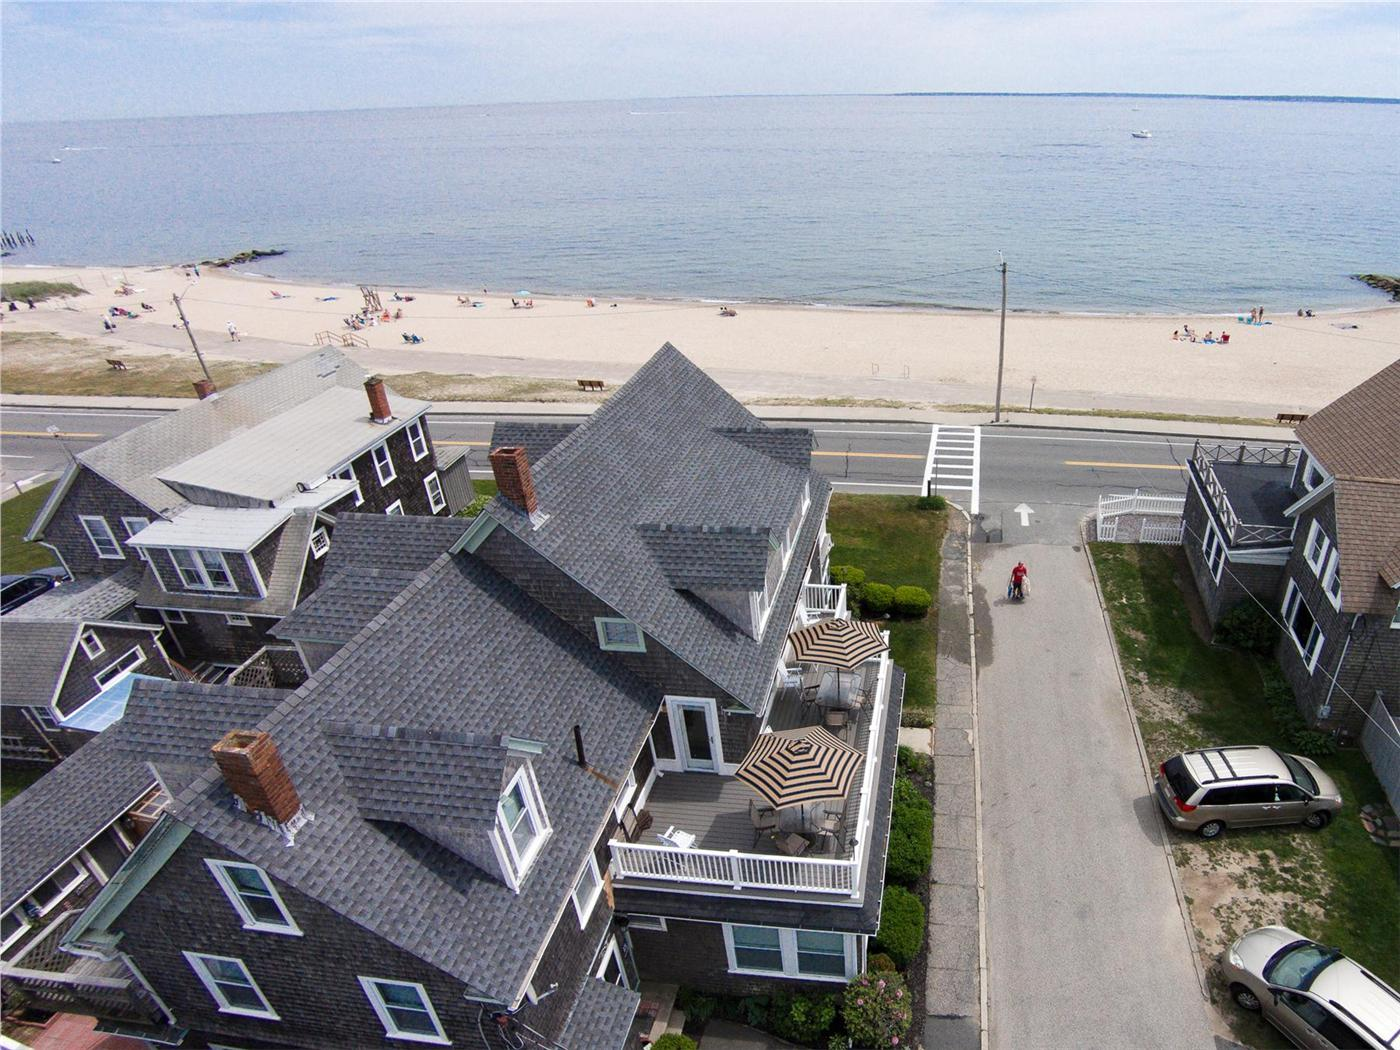 Stupendous Falmouth Vacation Rental Home In Cape Cod Ma Beachfront On Home Interior And Landscaping Ymoonbapapsignezvosmurscom